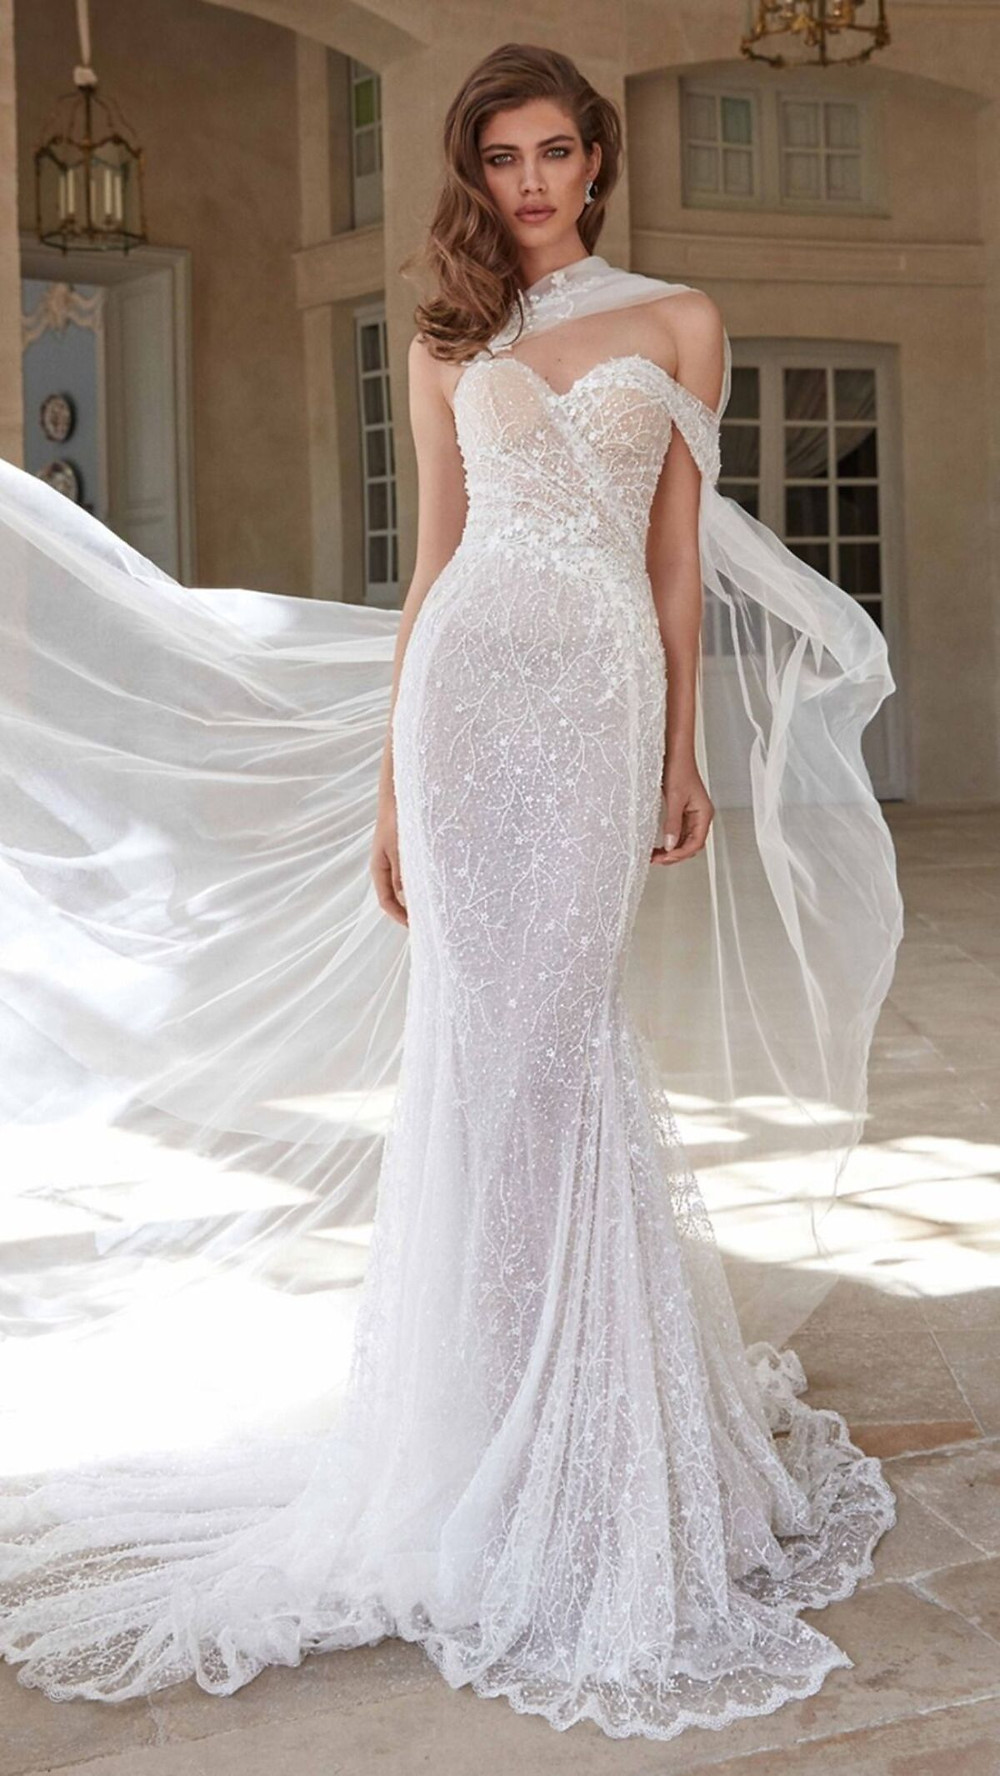 This soft mermaid wedding gown artfully draped with a delicate silk tulle and embroidered with scattered pearls and shimmery sequins features a sweetheart neckline, flowing skirt, and a sheer cape that attaches to the sweetheart neckline